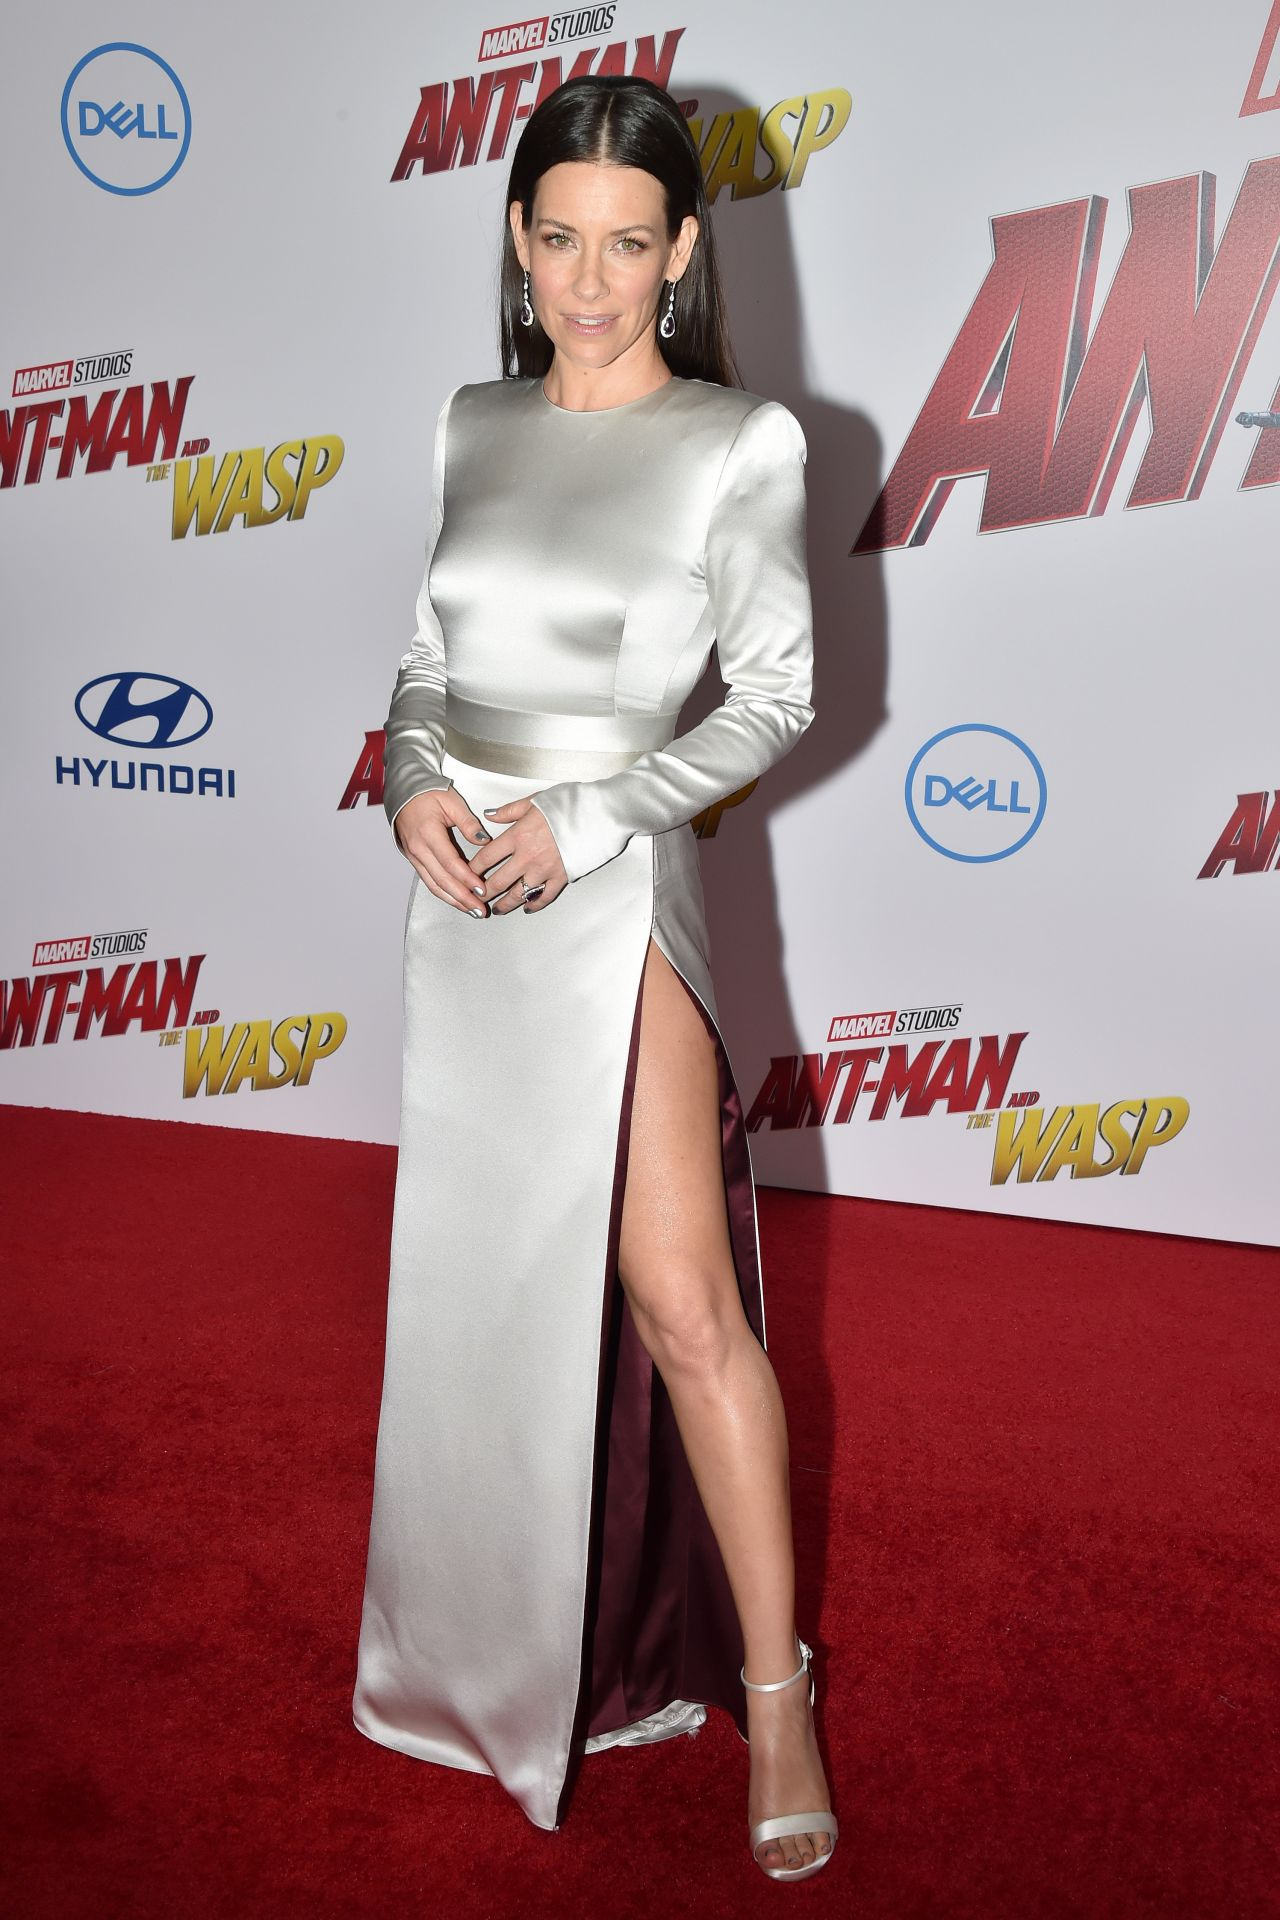 https://celebmafia.com/wp-content/uploads/2018/06/evangeline-lilly-ant-man-and-the-wasp-premiere-in-la-8.jpg